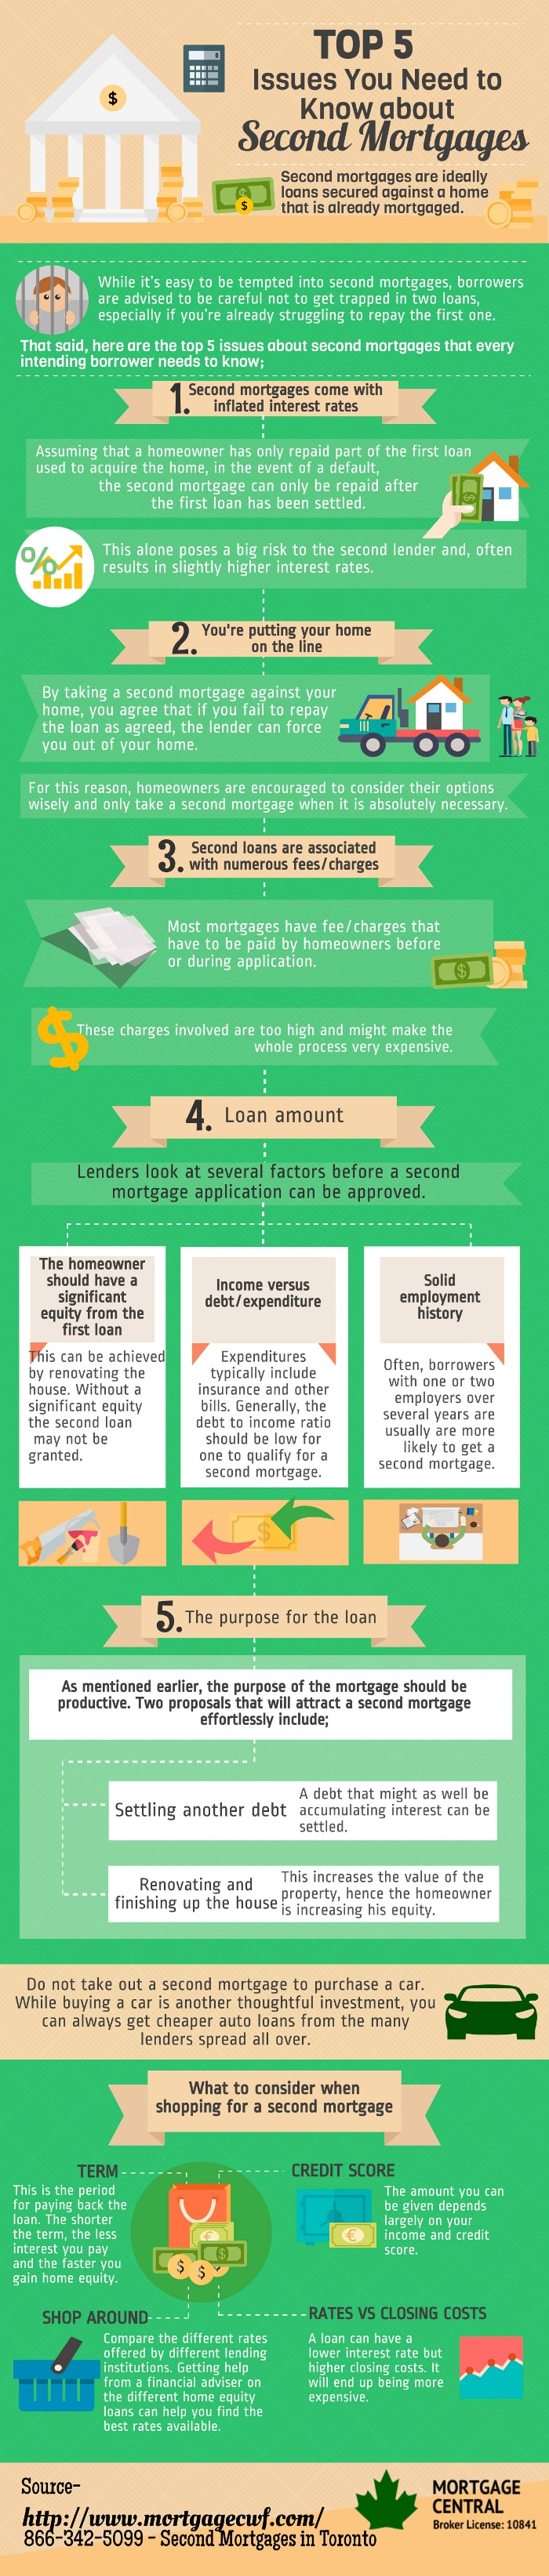 Top 5 Facts about Second Mortgages